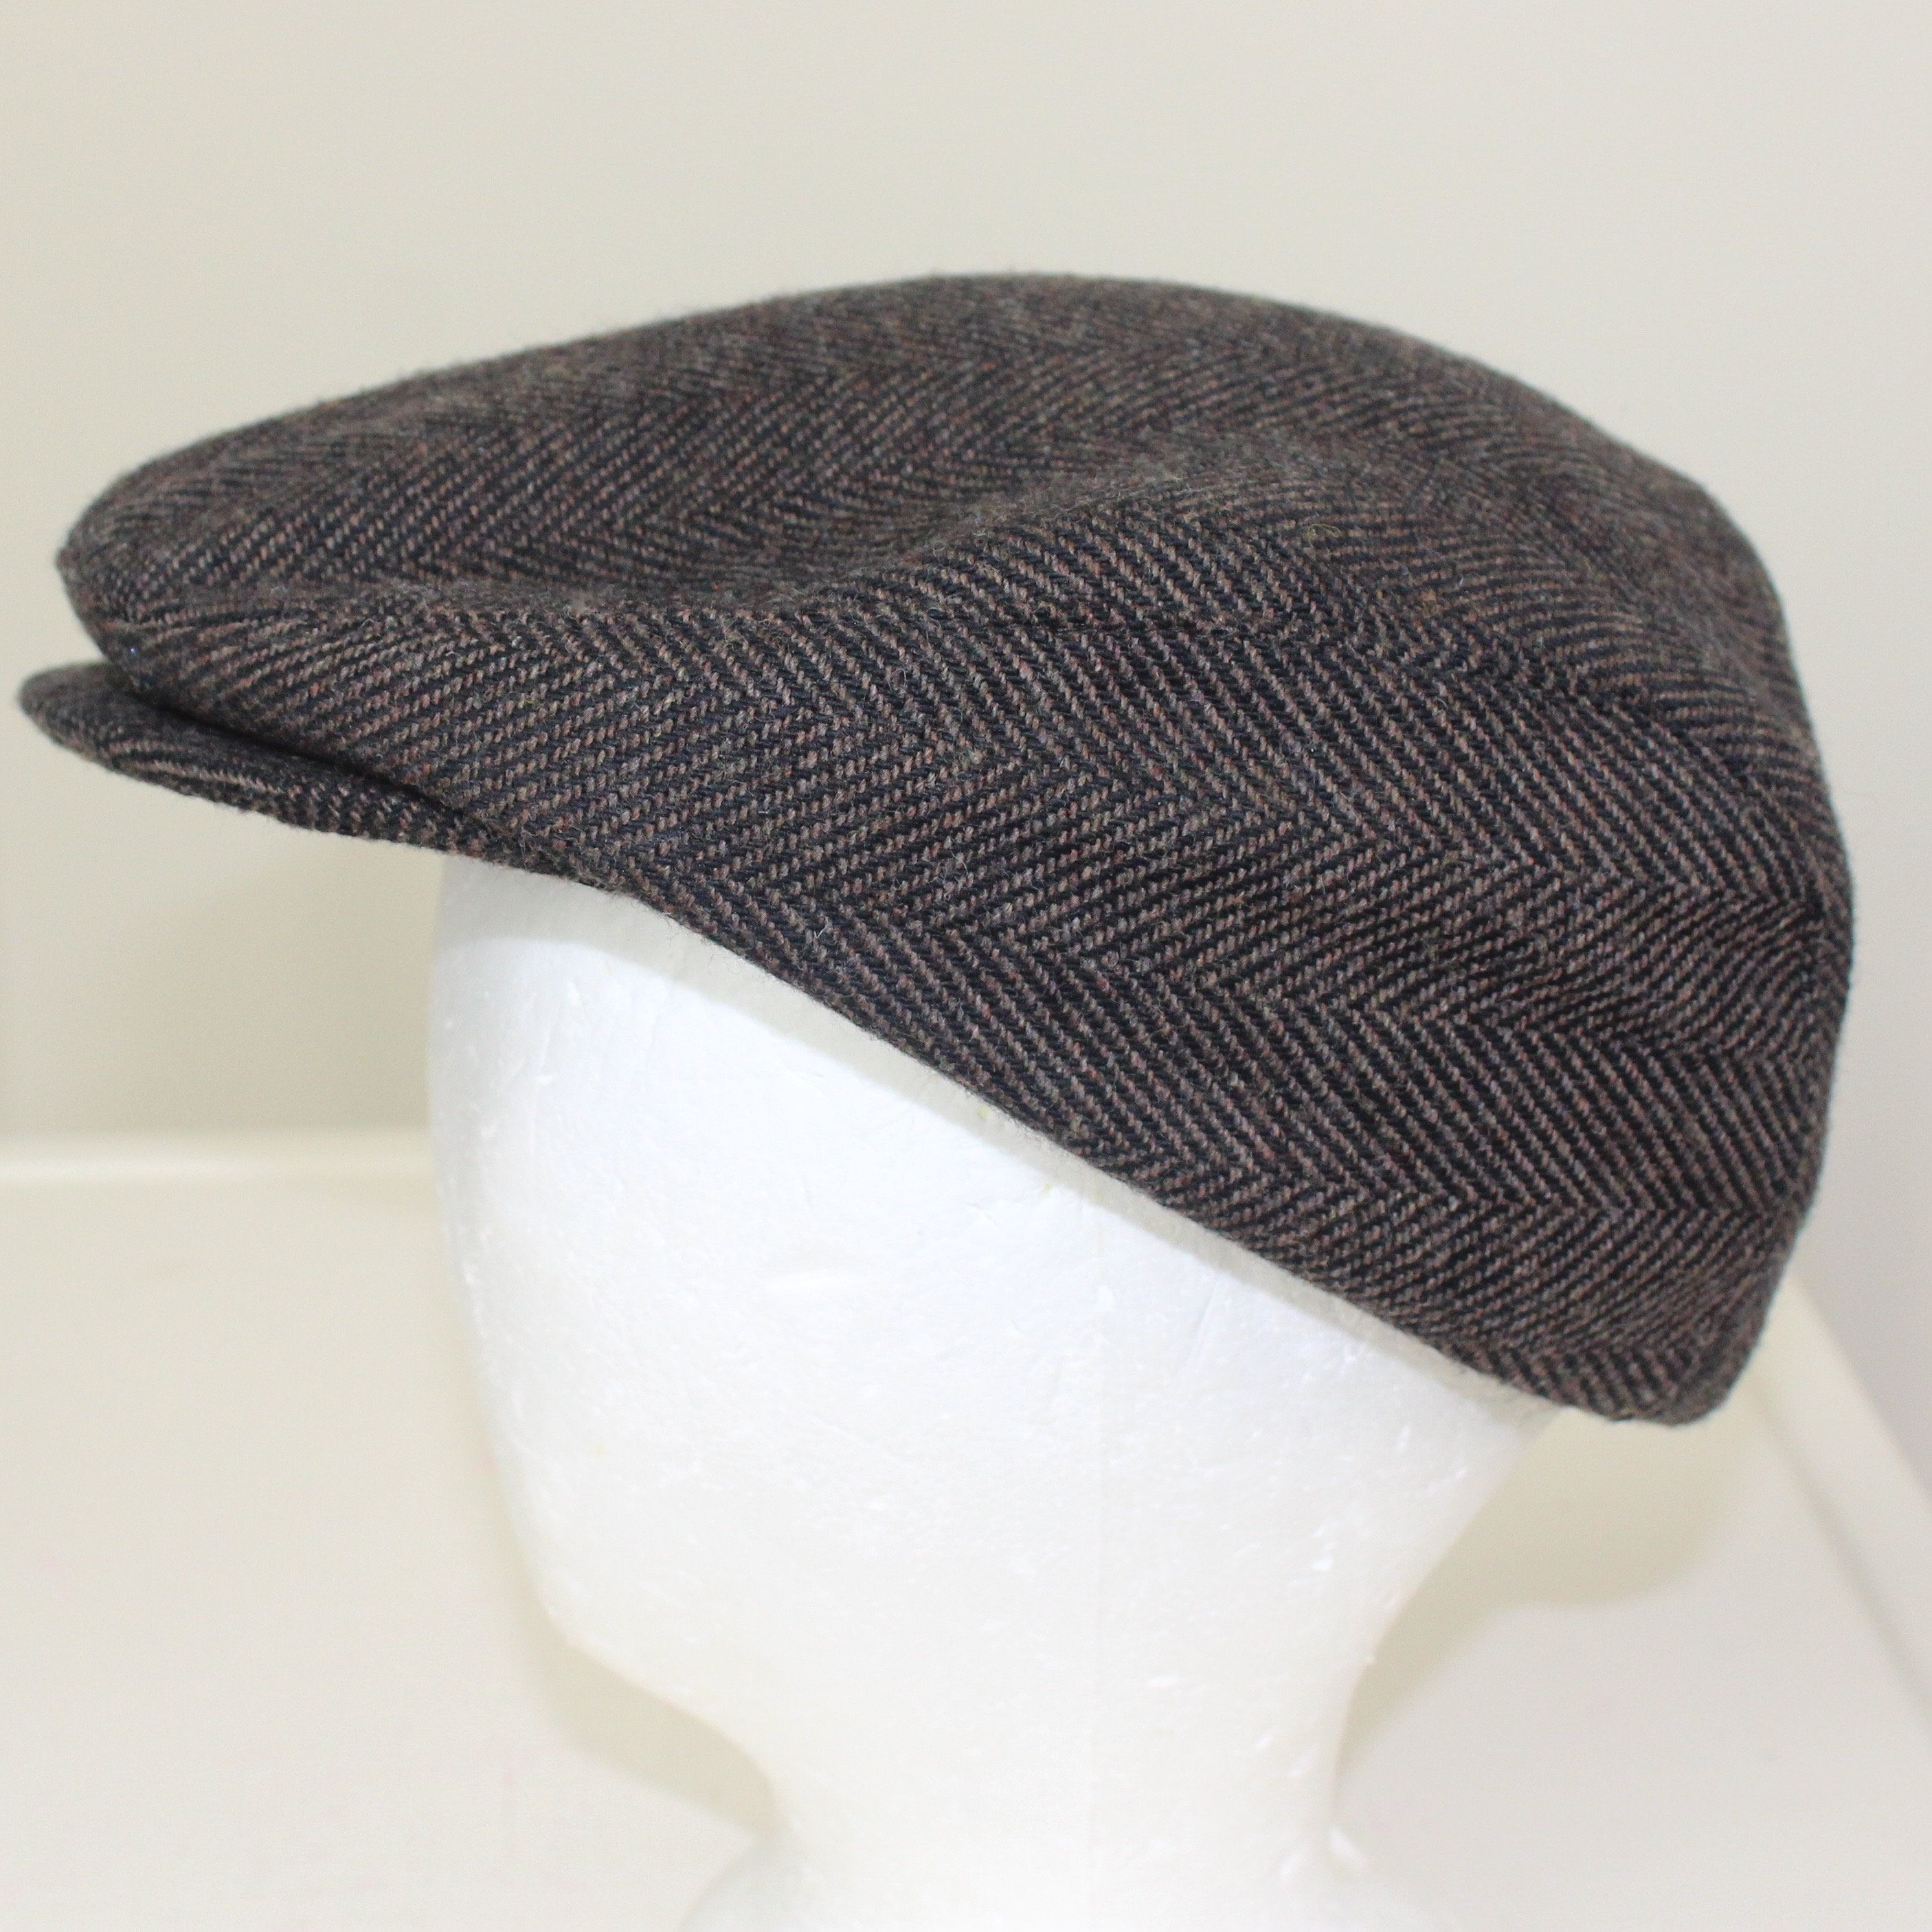 Broner Driving Cap with Ear Flaps Med Thinsulate Cabbie Hat Herringbone  Tweed Duckbill Cap by ThePuppeTree on Etsy 78ac6c824812